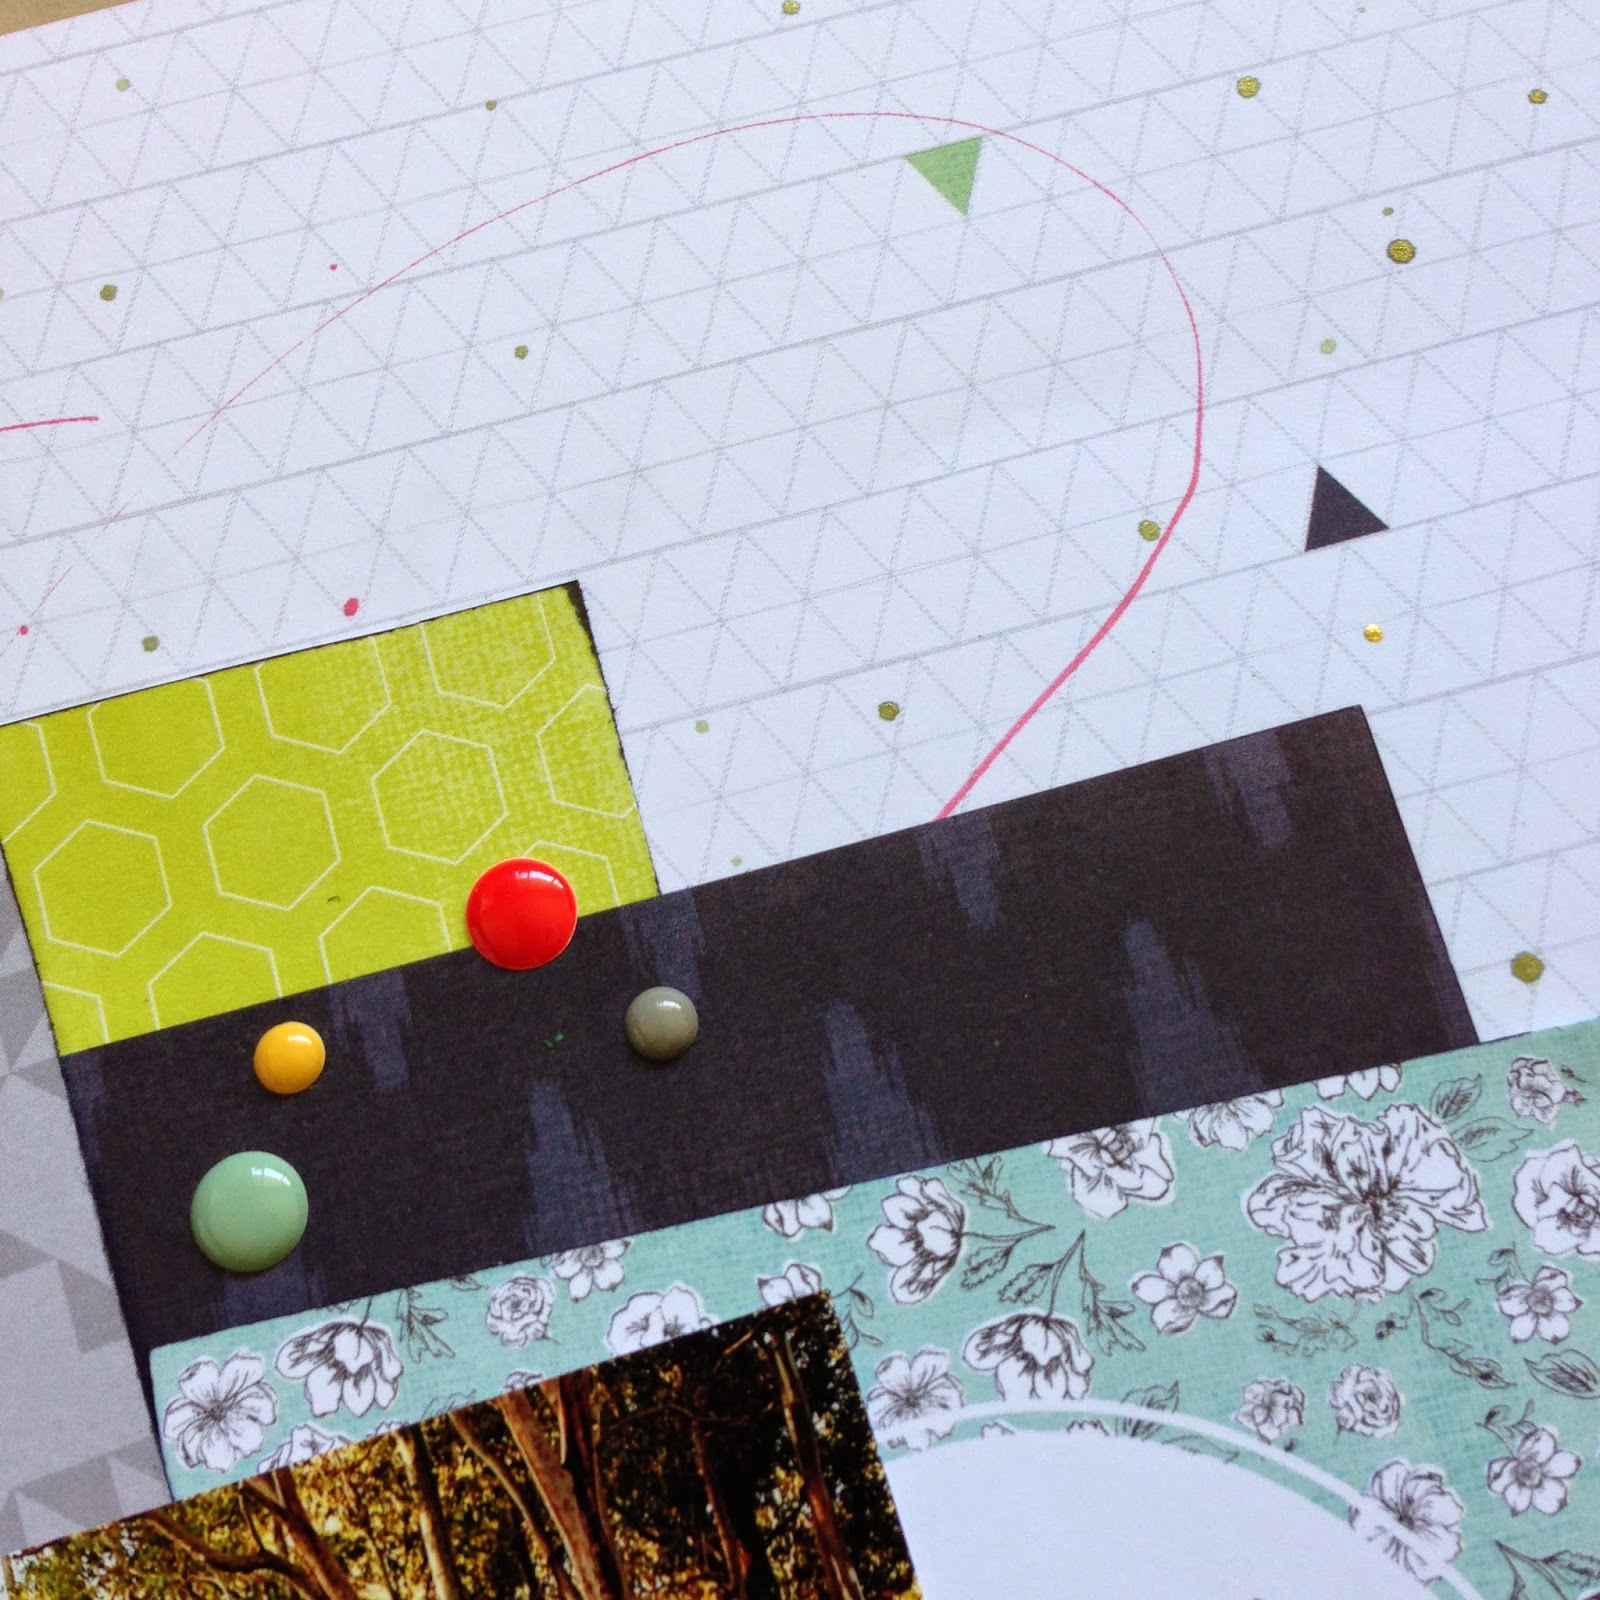 Detail from 'Amazing' - Layout by Tracey Kinny for Dizzy Izzy Scrapbooking